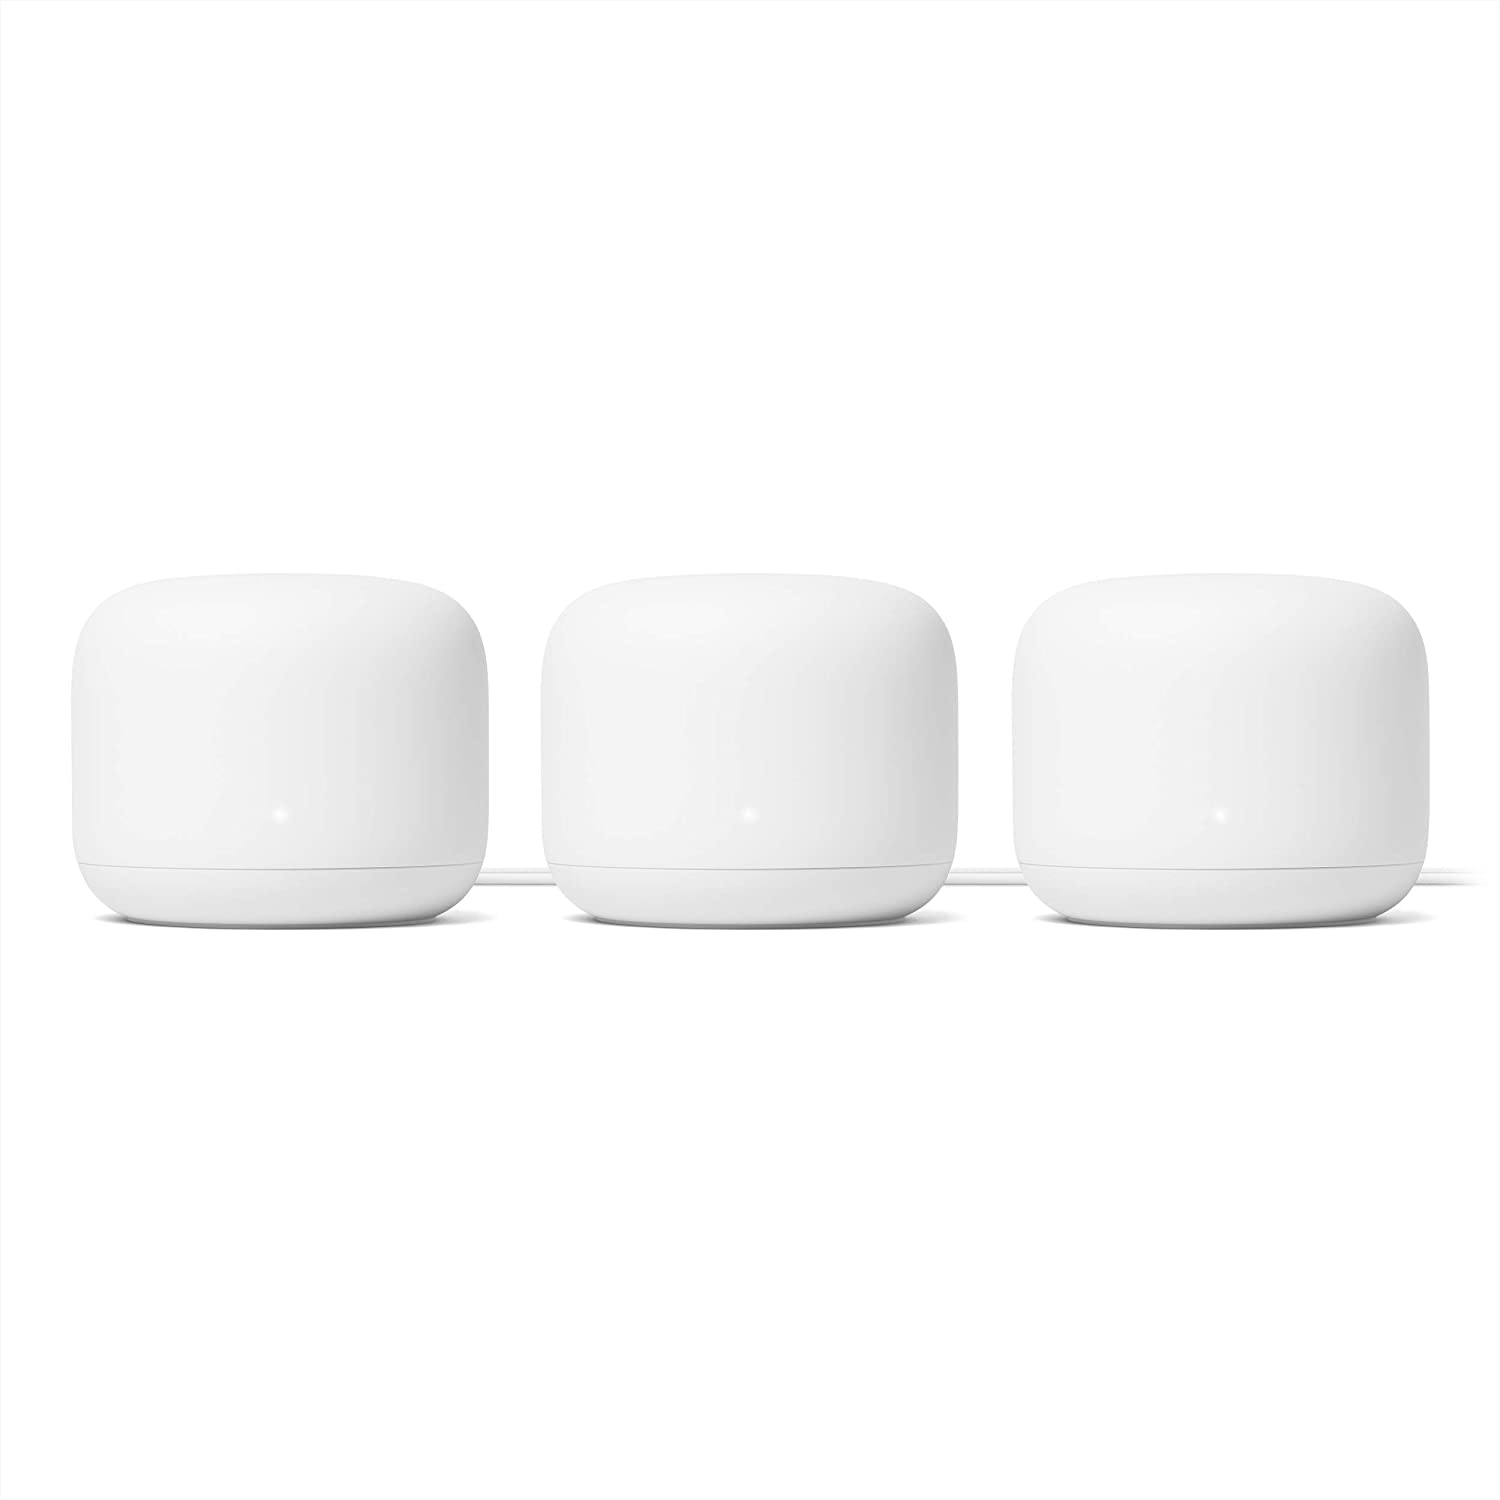 Google Nest WiFi Router 3 Pack - AC2200 - Mesh Wi-Fi Routers